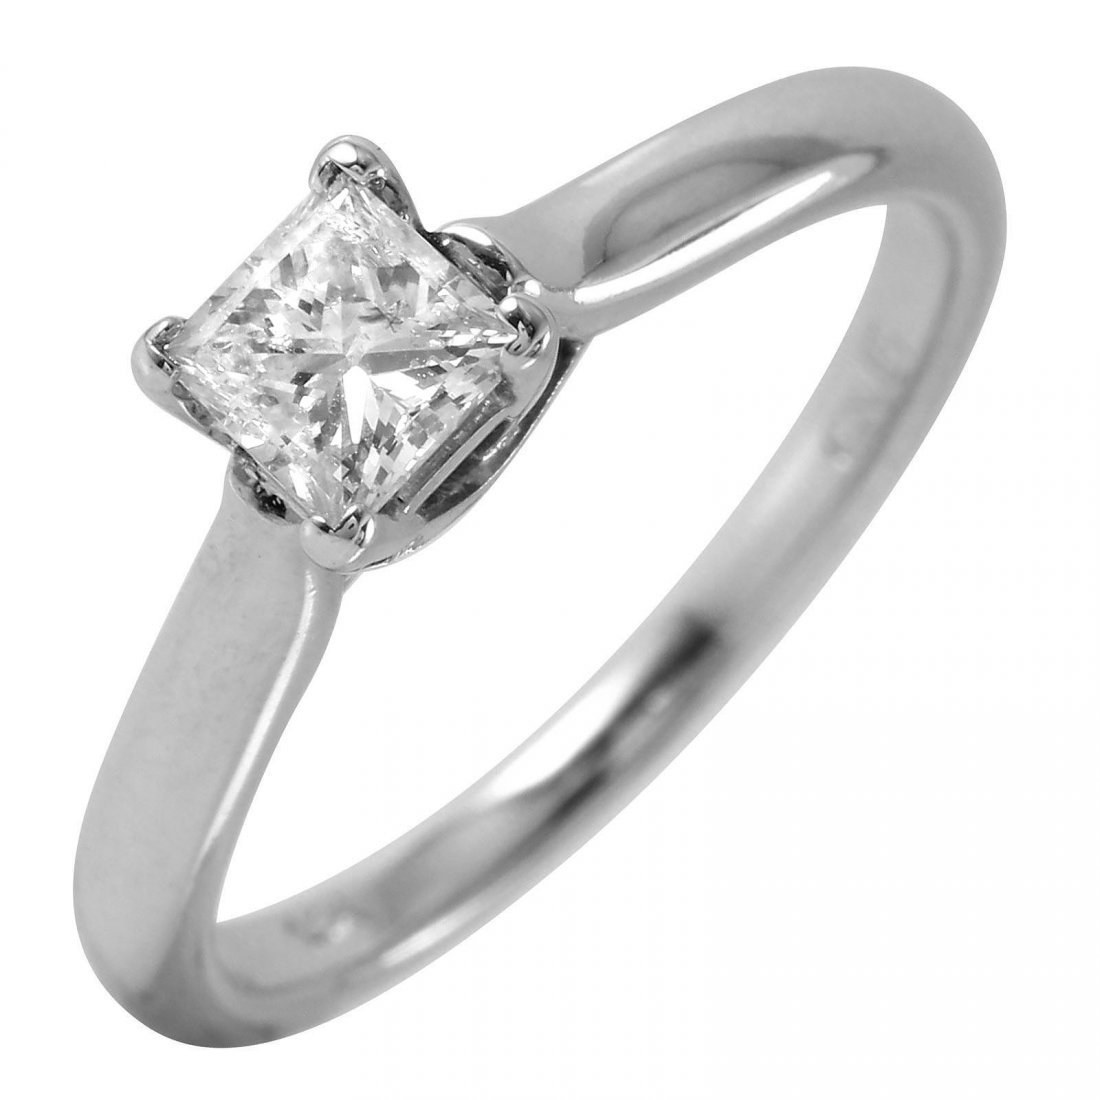 14KT White Gold Diamond Solitaire Ring - #42